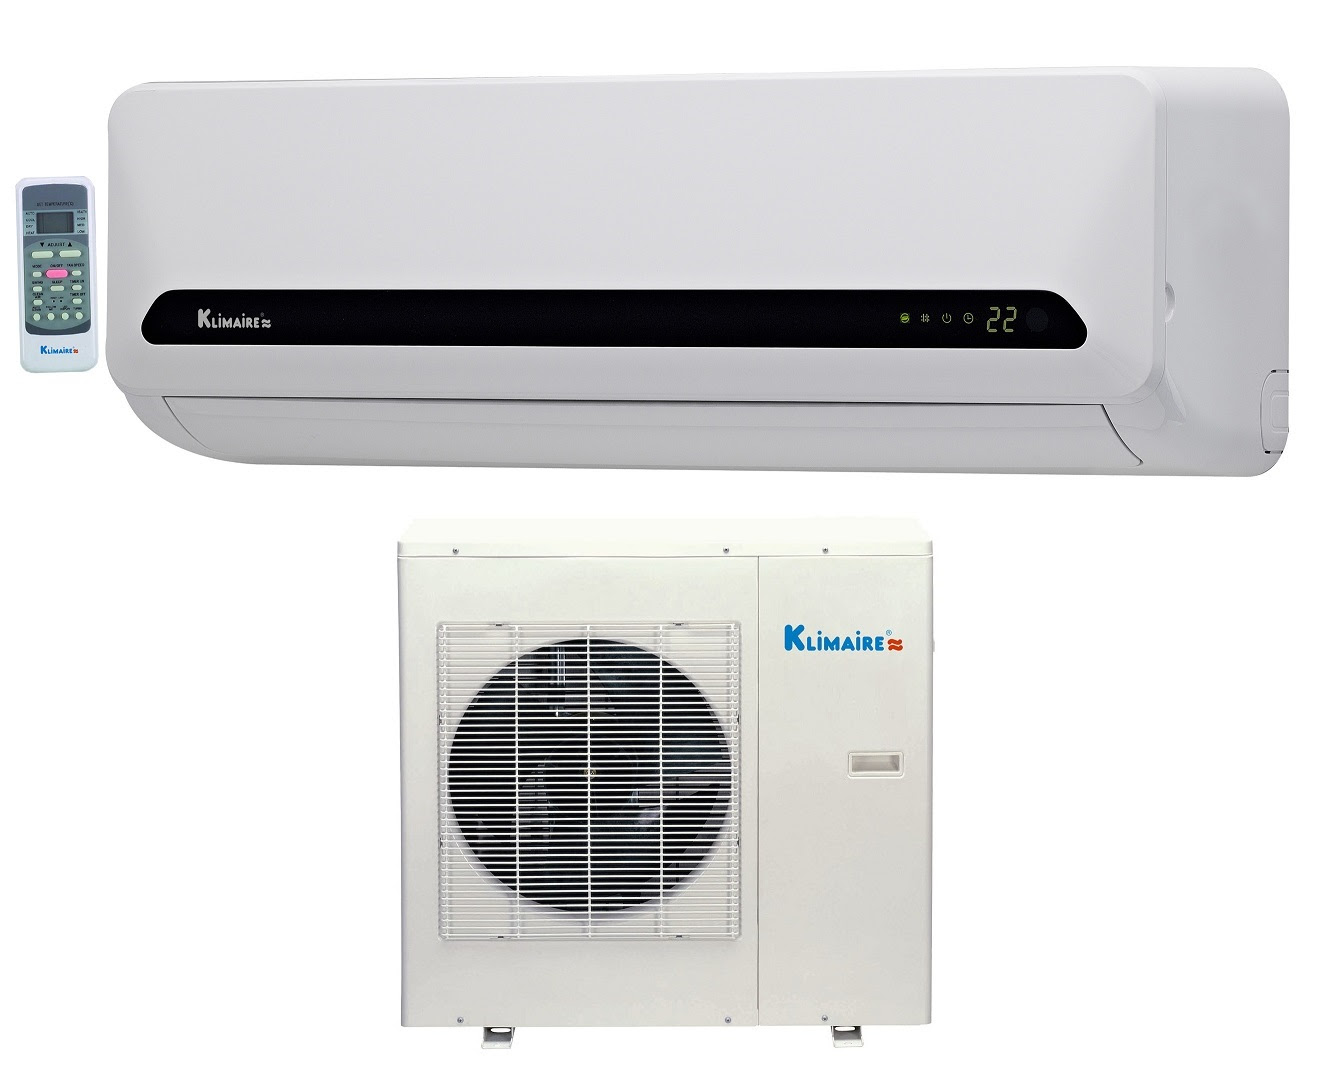 #2277AA 110v Air Conditioner Grihon.com AC Coolers & Devices Recommended 11247 Bluetooth Air Conditioner pics with 1319x1070 px on helpvideos.info - Air Conditioners, Air Coolers and more